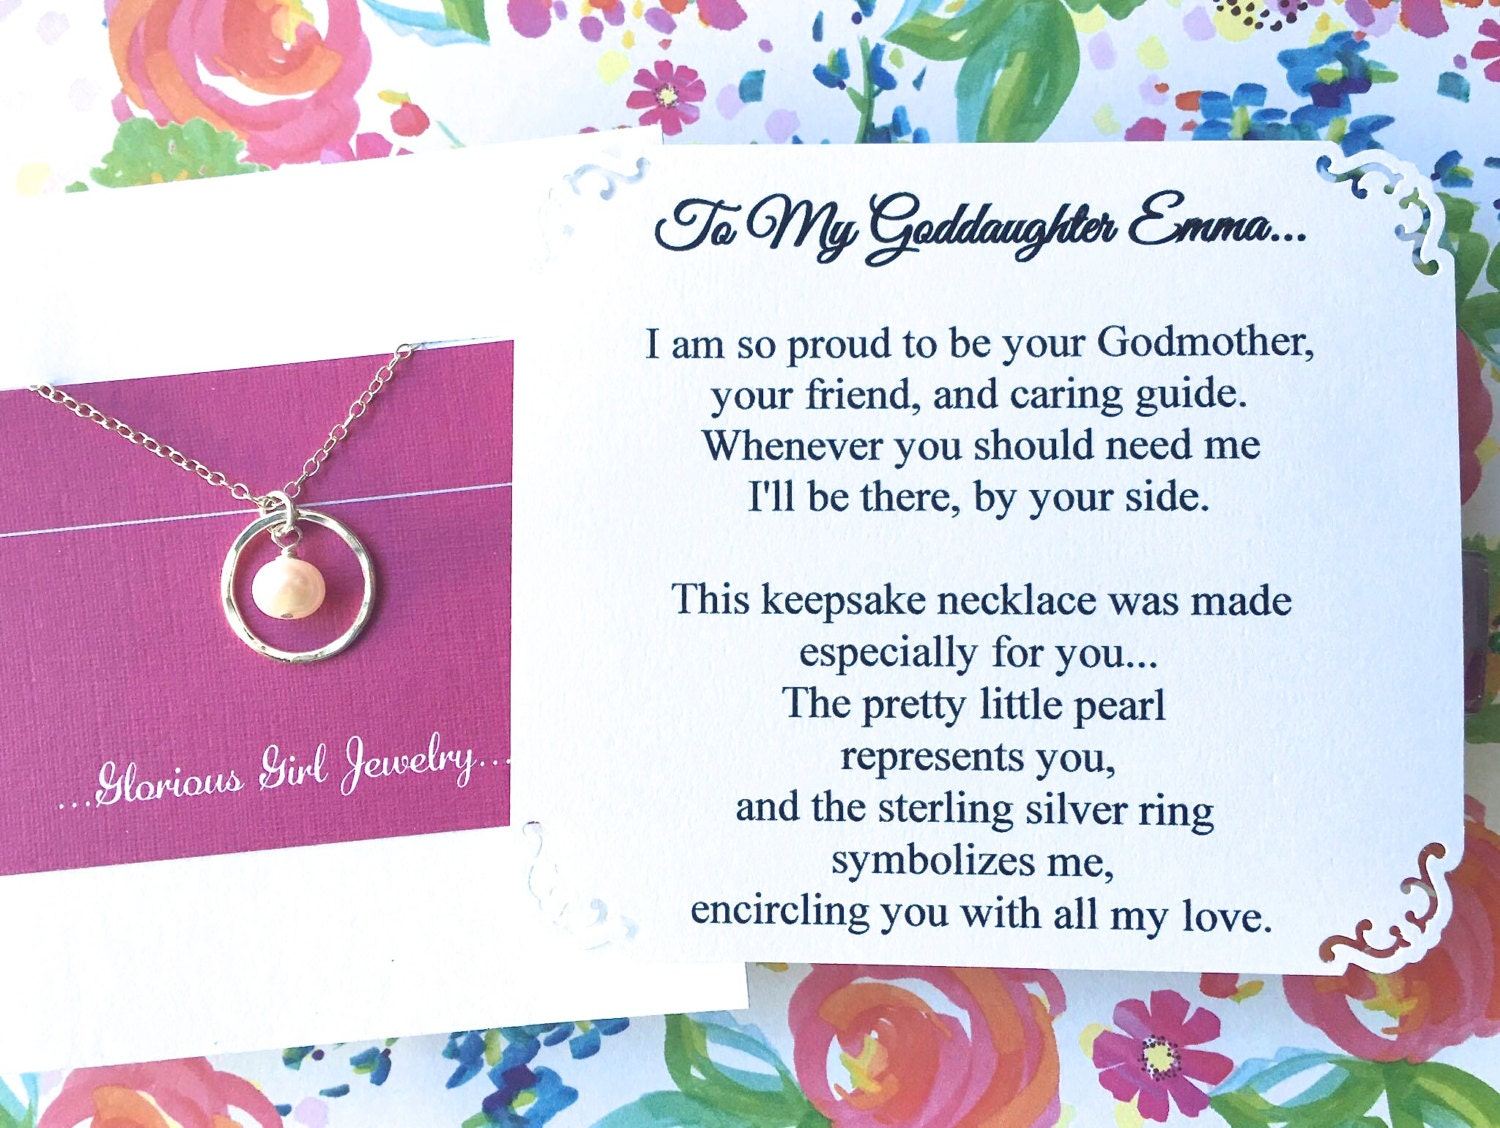 Happy Birthday Godmother Card: GODDAUGHTER Necklace With POEM CARD Jewelry Gift For